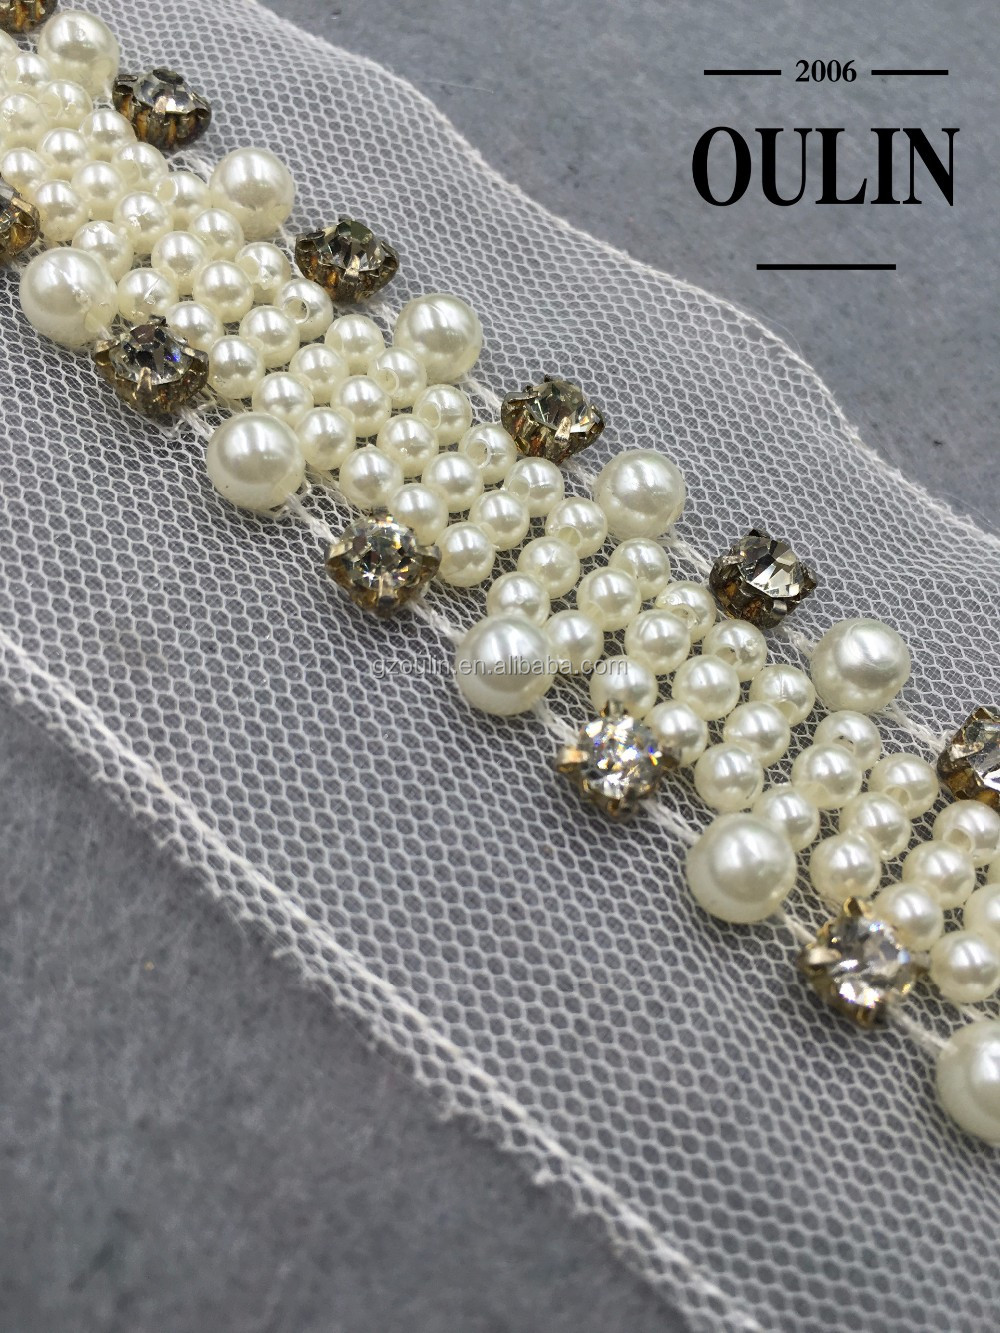 Bridal rhinestone lace applique rhinestone, rhinestone type pearl chain lace for clothing